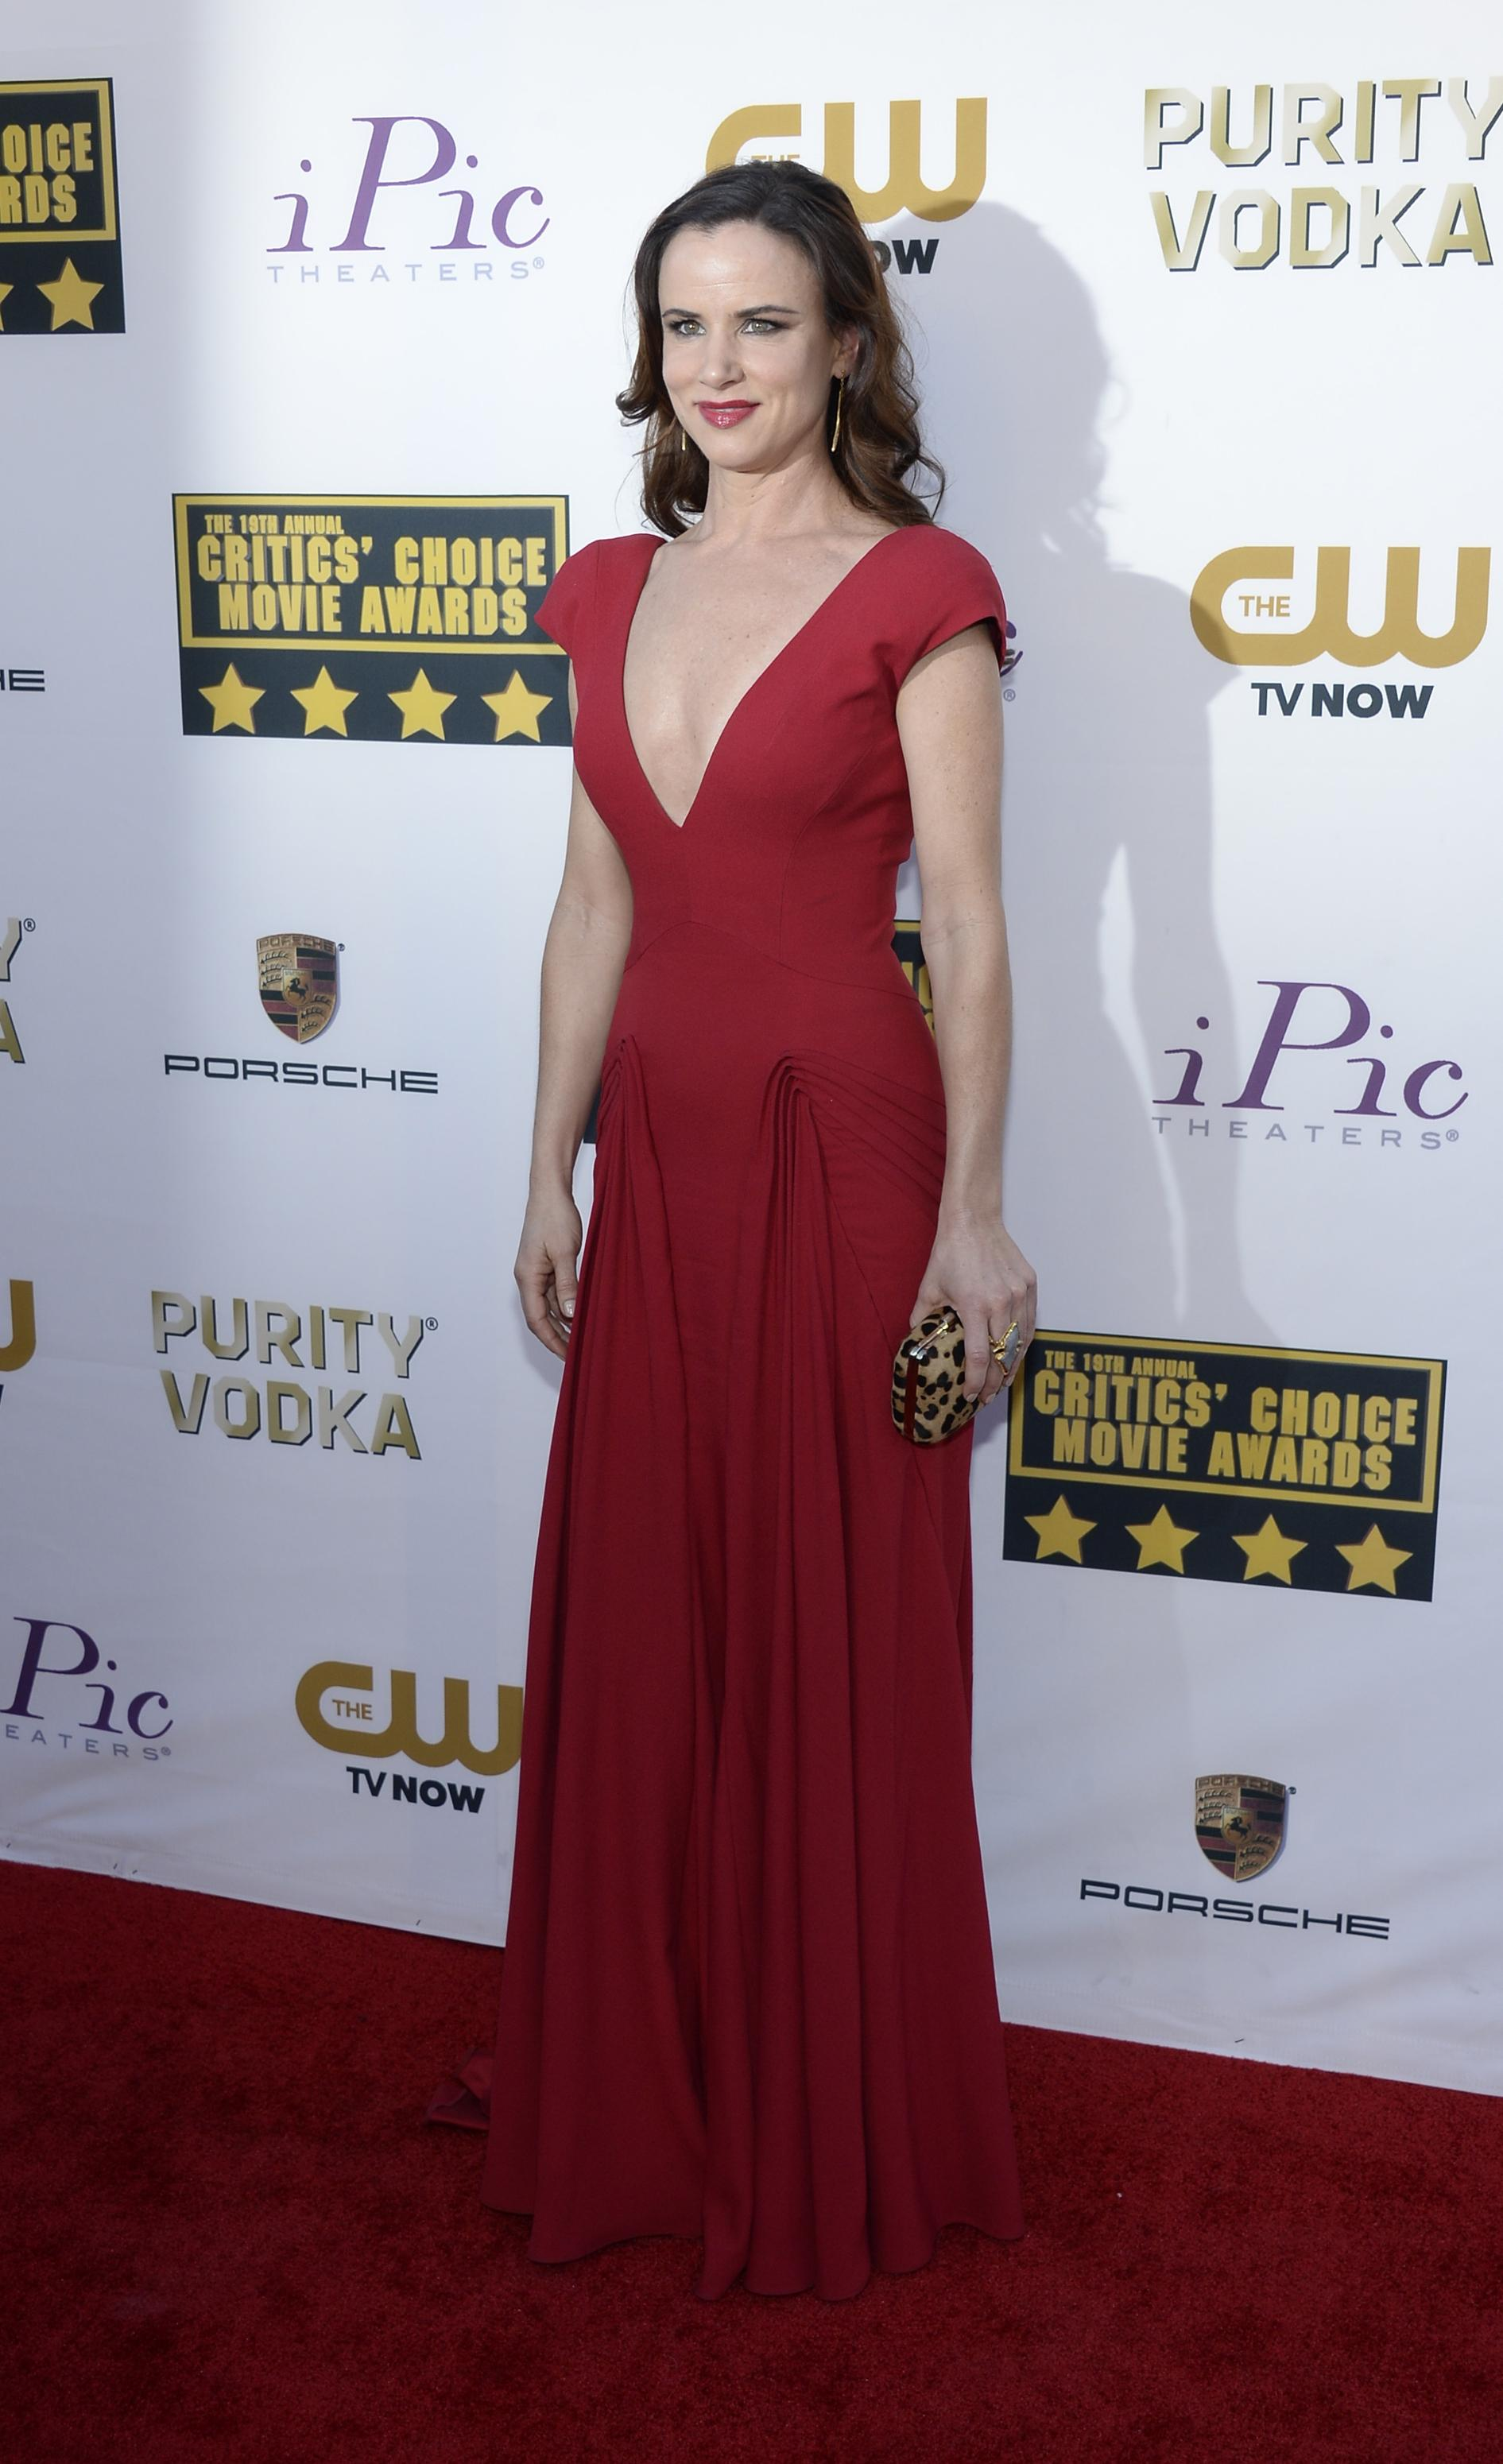 Critics' Choice Awards 2014 Red Carpet